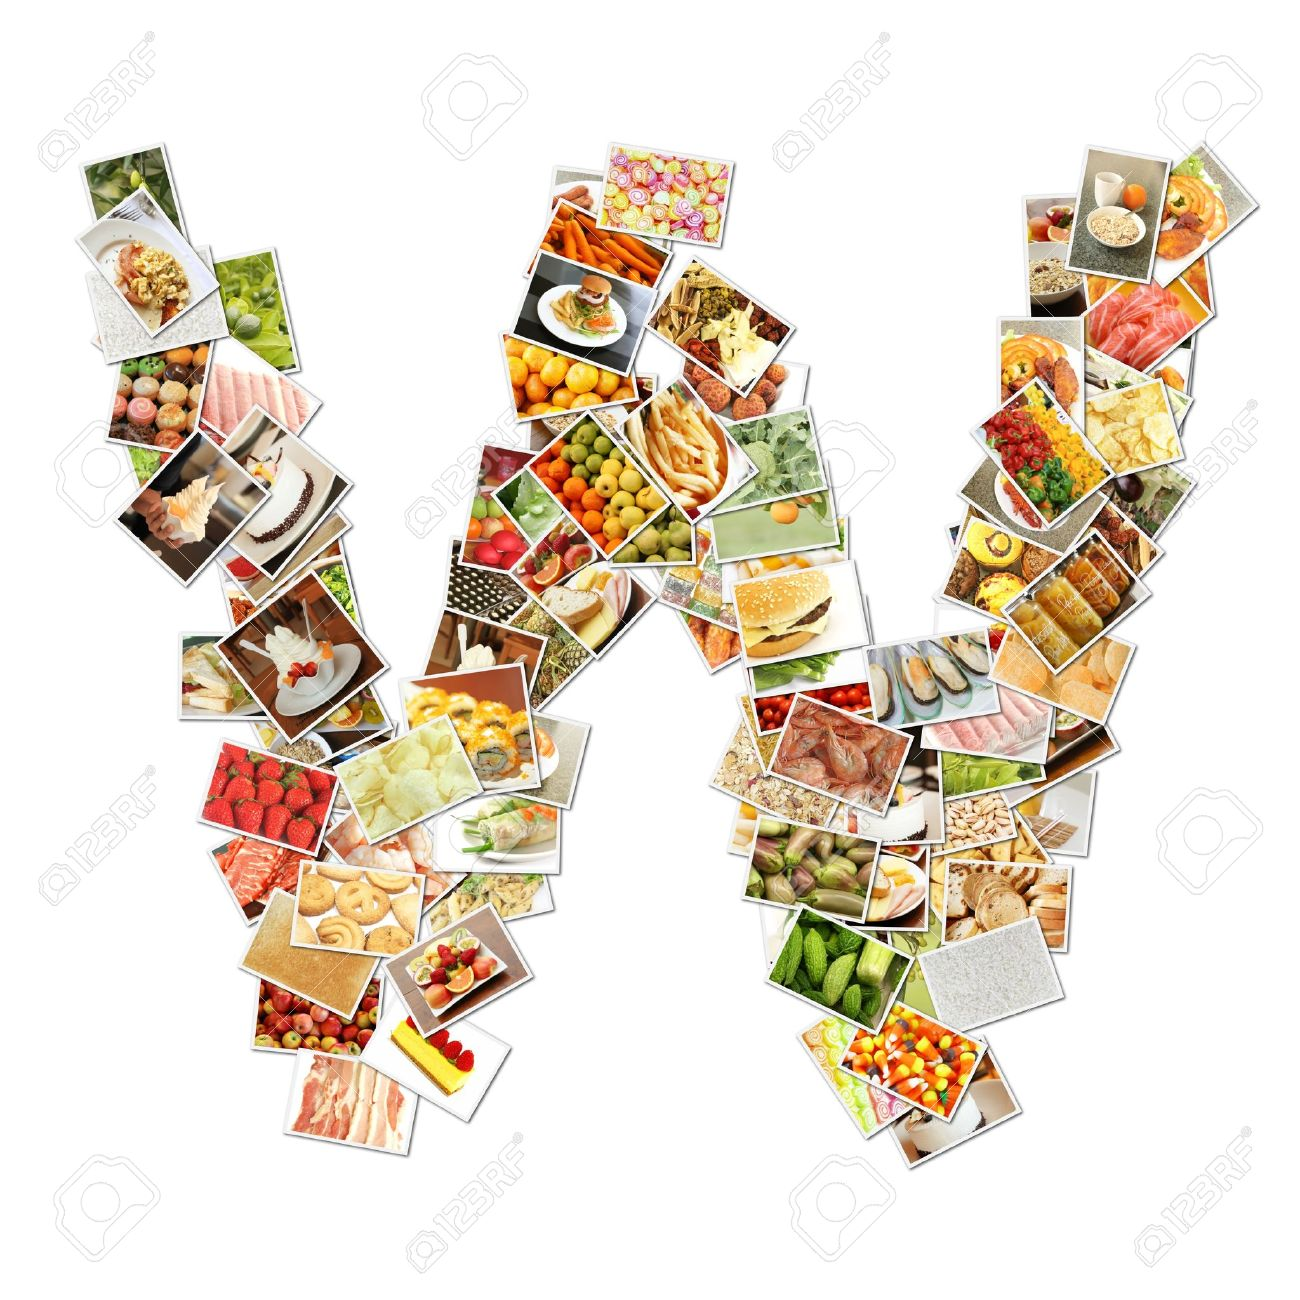 letter w food collage concept art stock photo picture and letter w food collage concept art stock photo 9691845